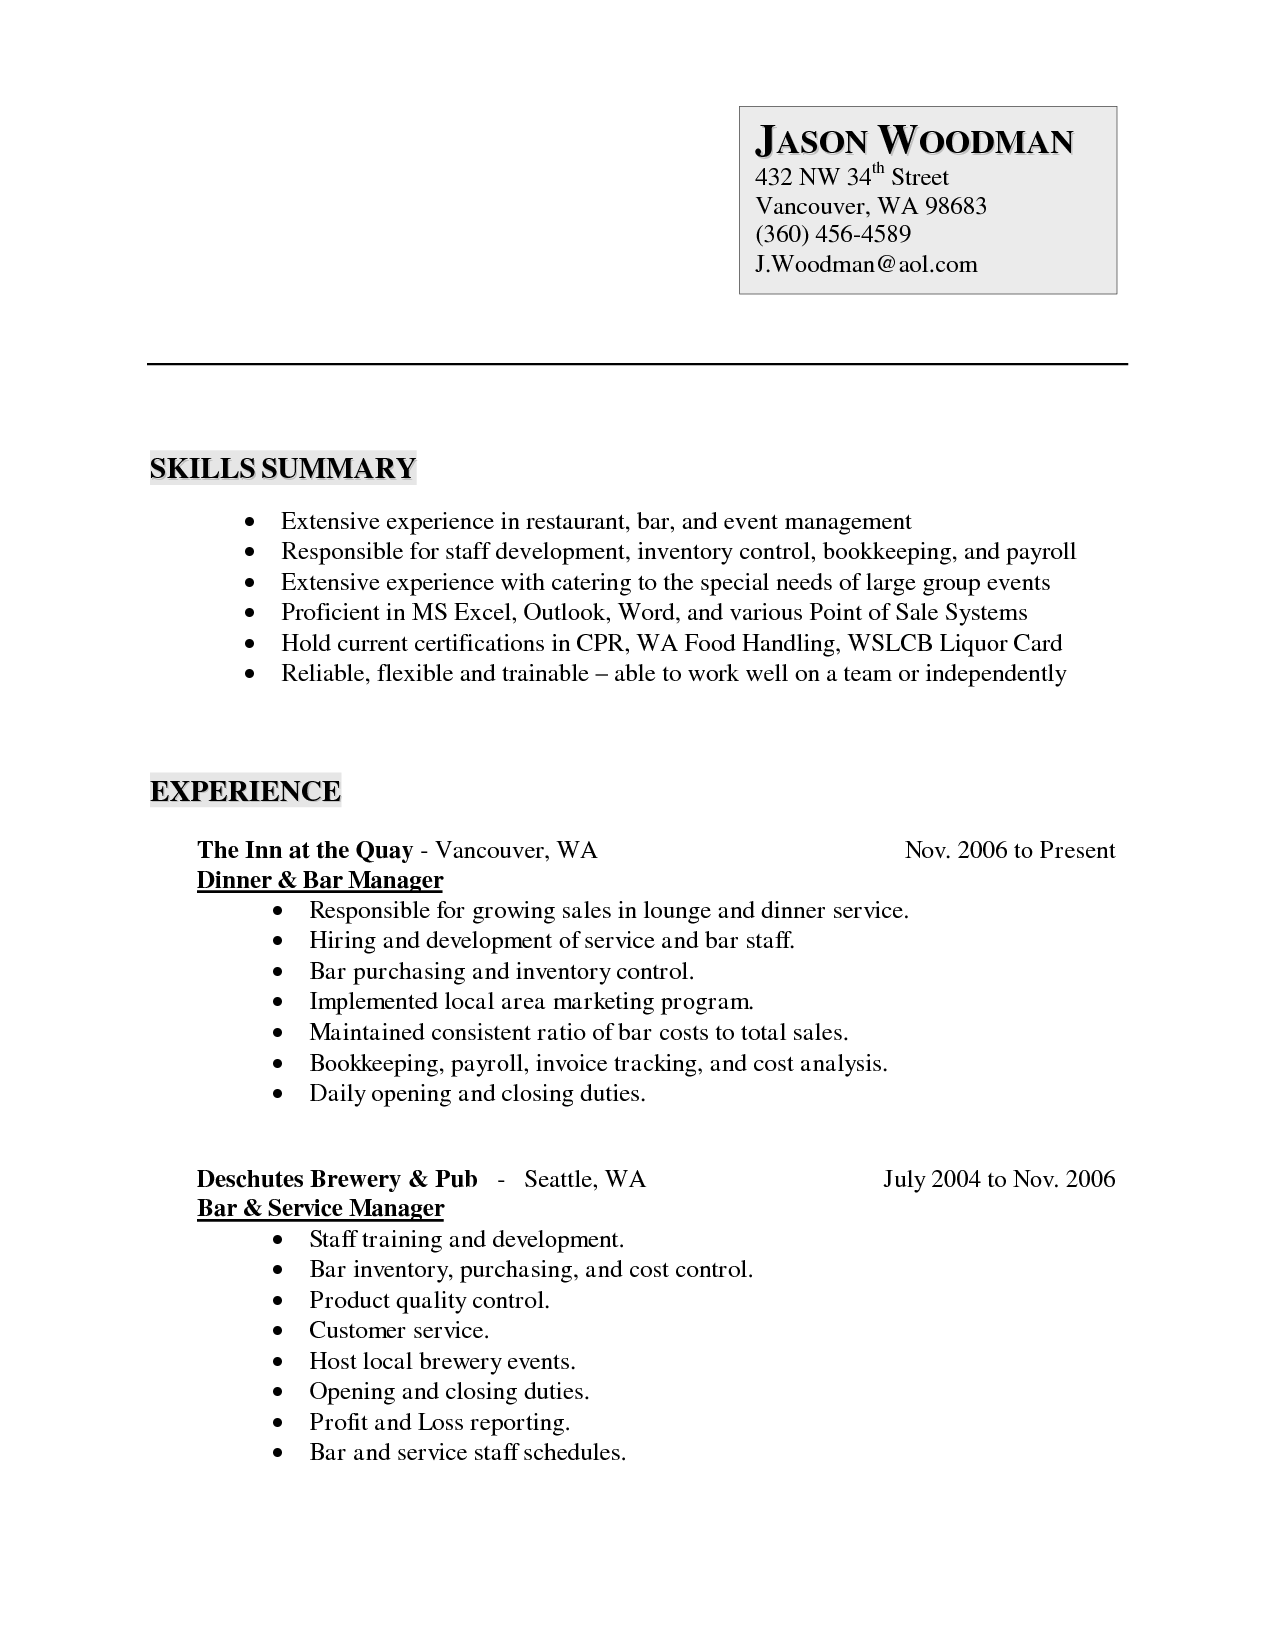 Letter examples volunteer positionvolunteer work on resume letter examples volunteer positionvolunteer work on resume application letter sample spiritdancerdesigns Images